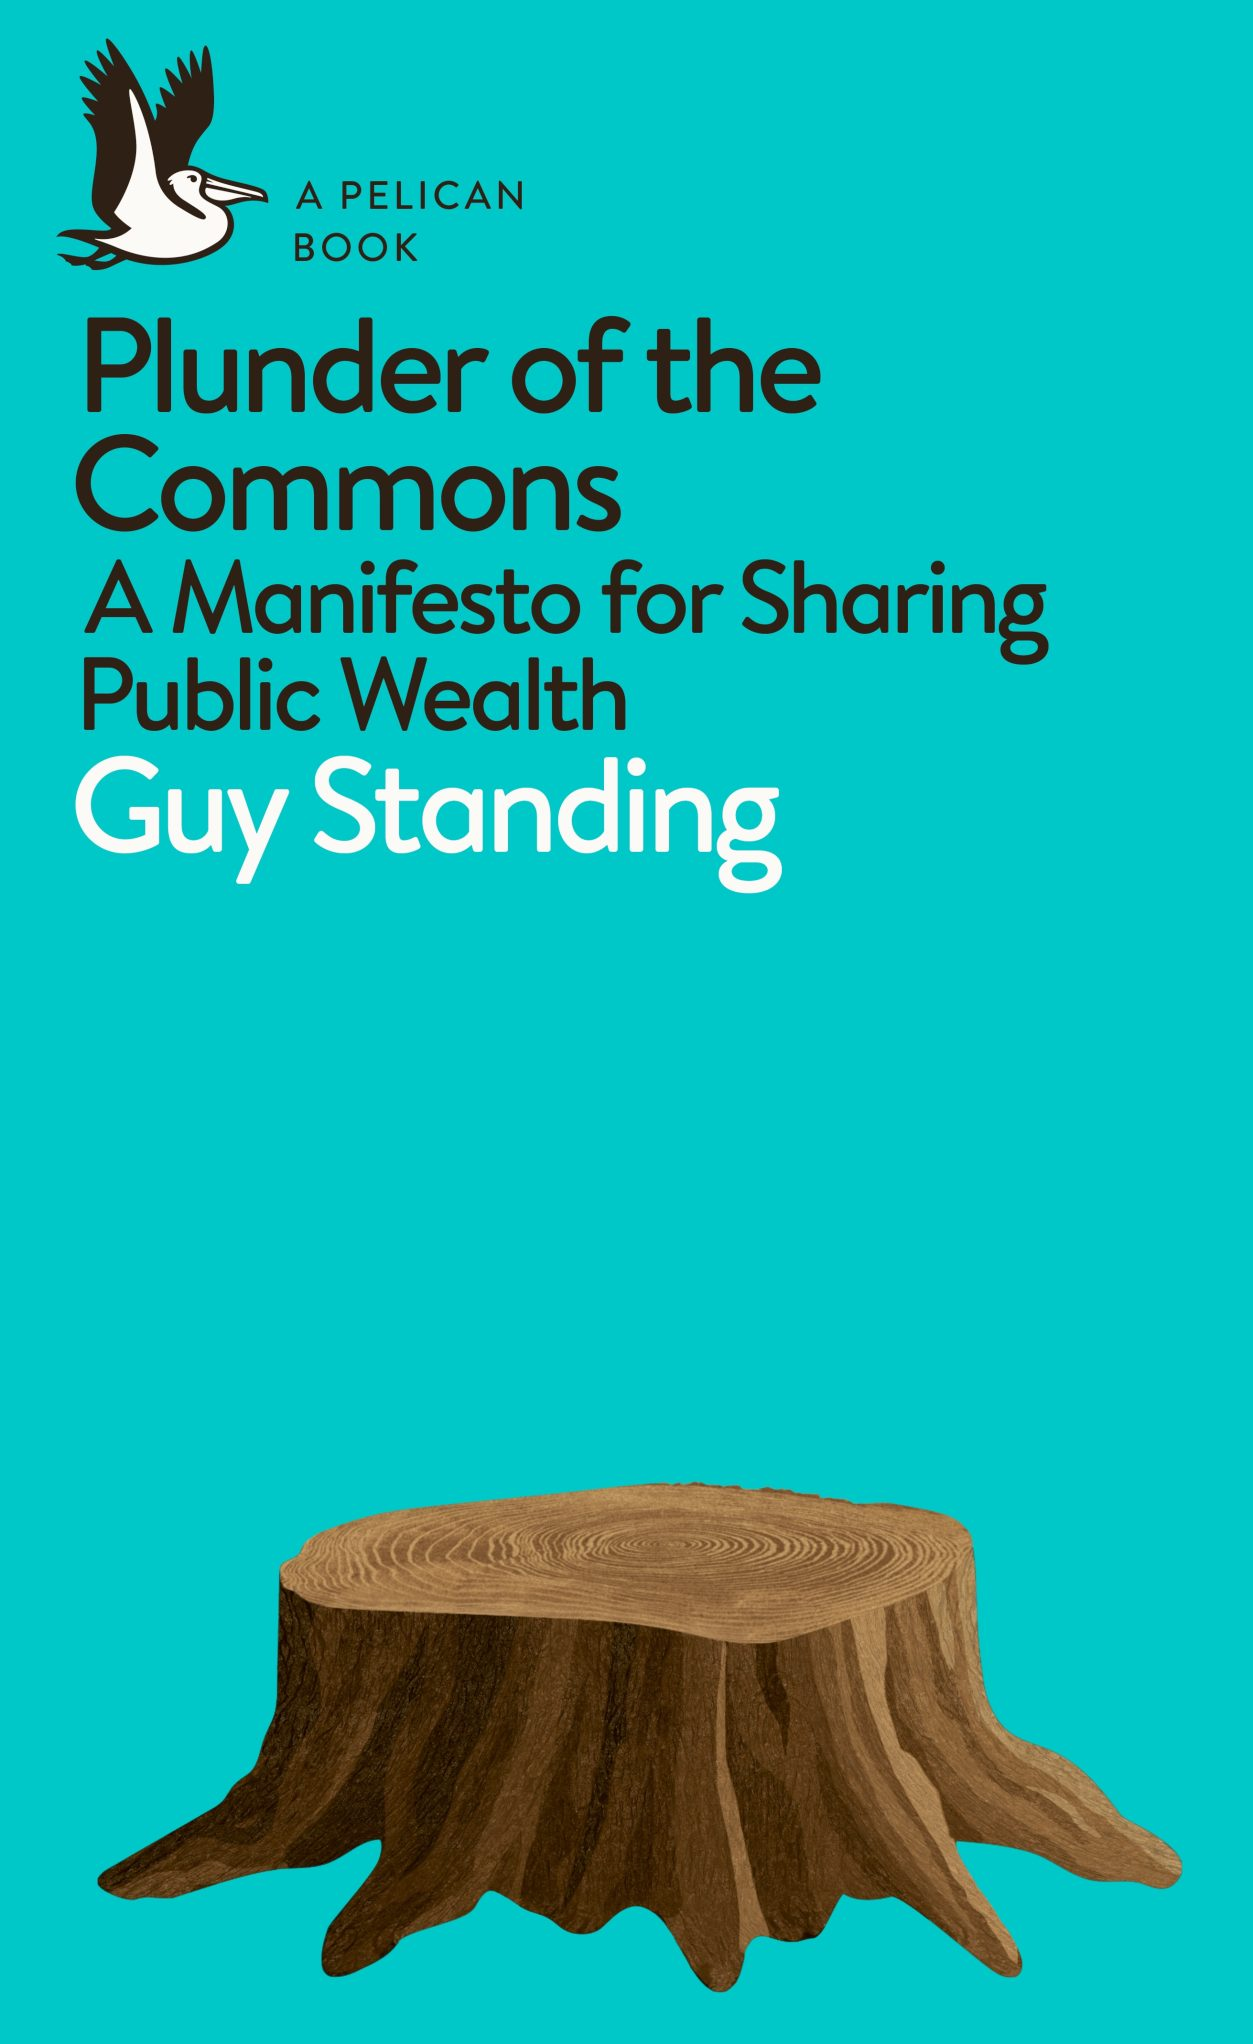 Plunder of the commons book